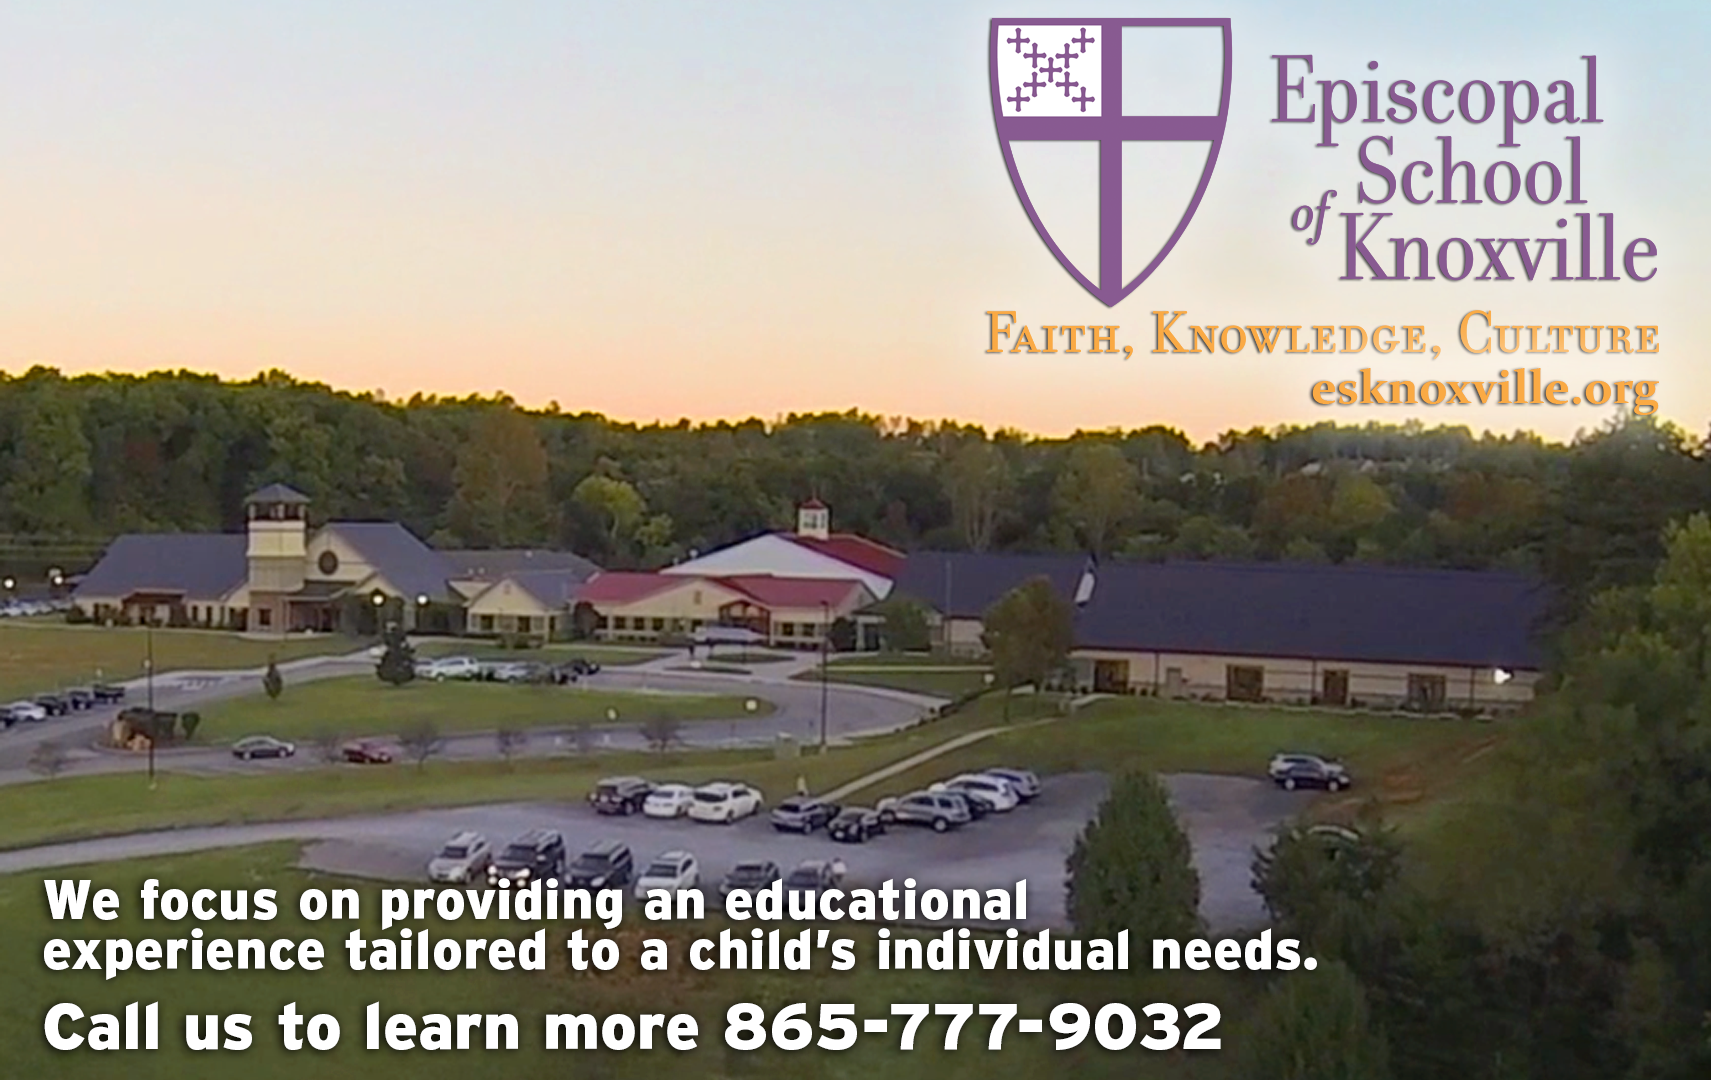 The Episcopal School Of Knoxville See Why ESK Is Different, Open House - Sept. 14 - all day865-777-9032